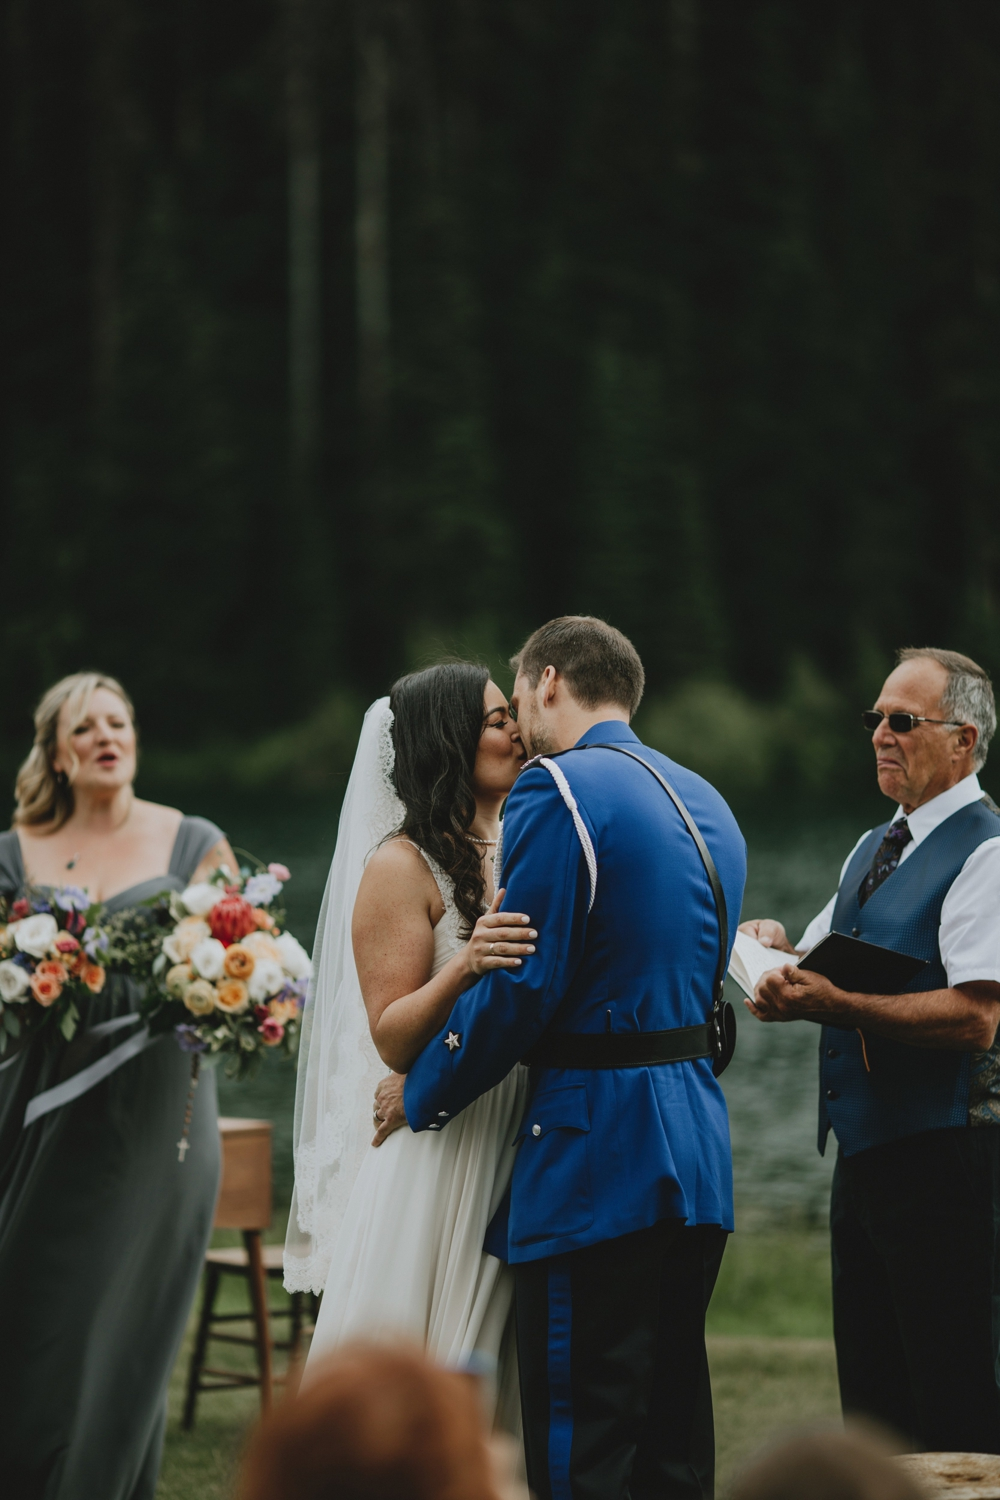 Danaea-Li-Photography-manning-park-wedding_0022.jpg